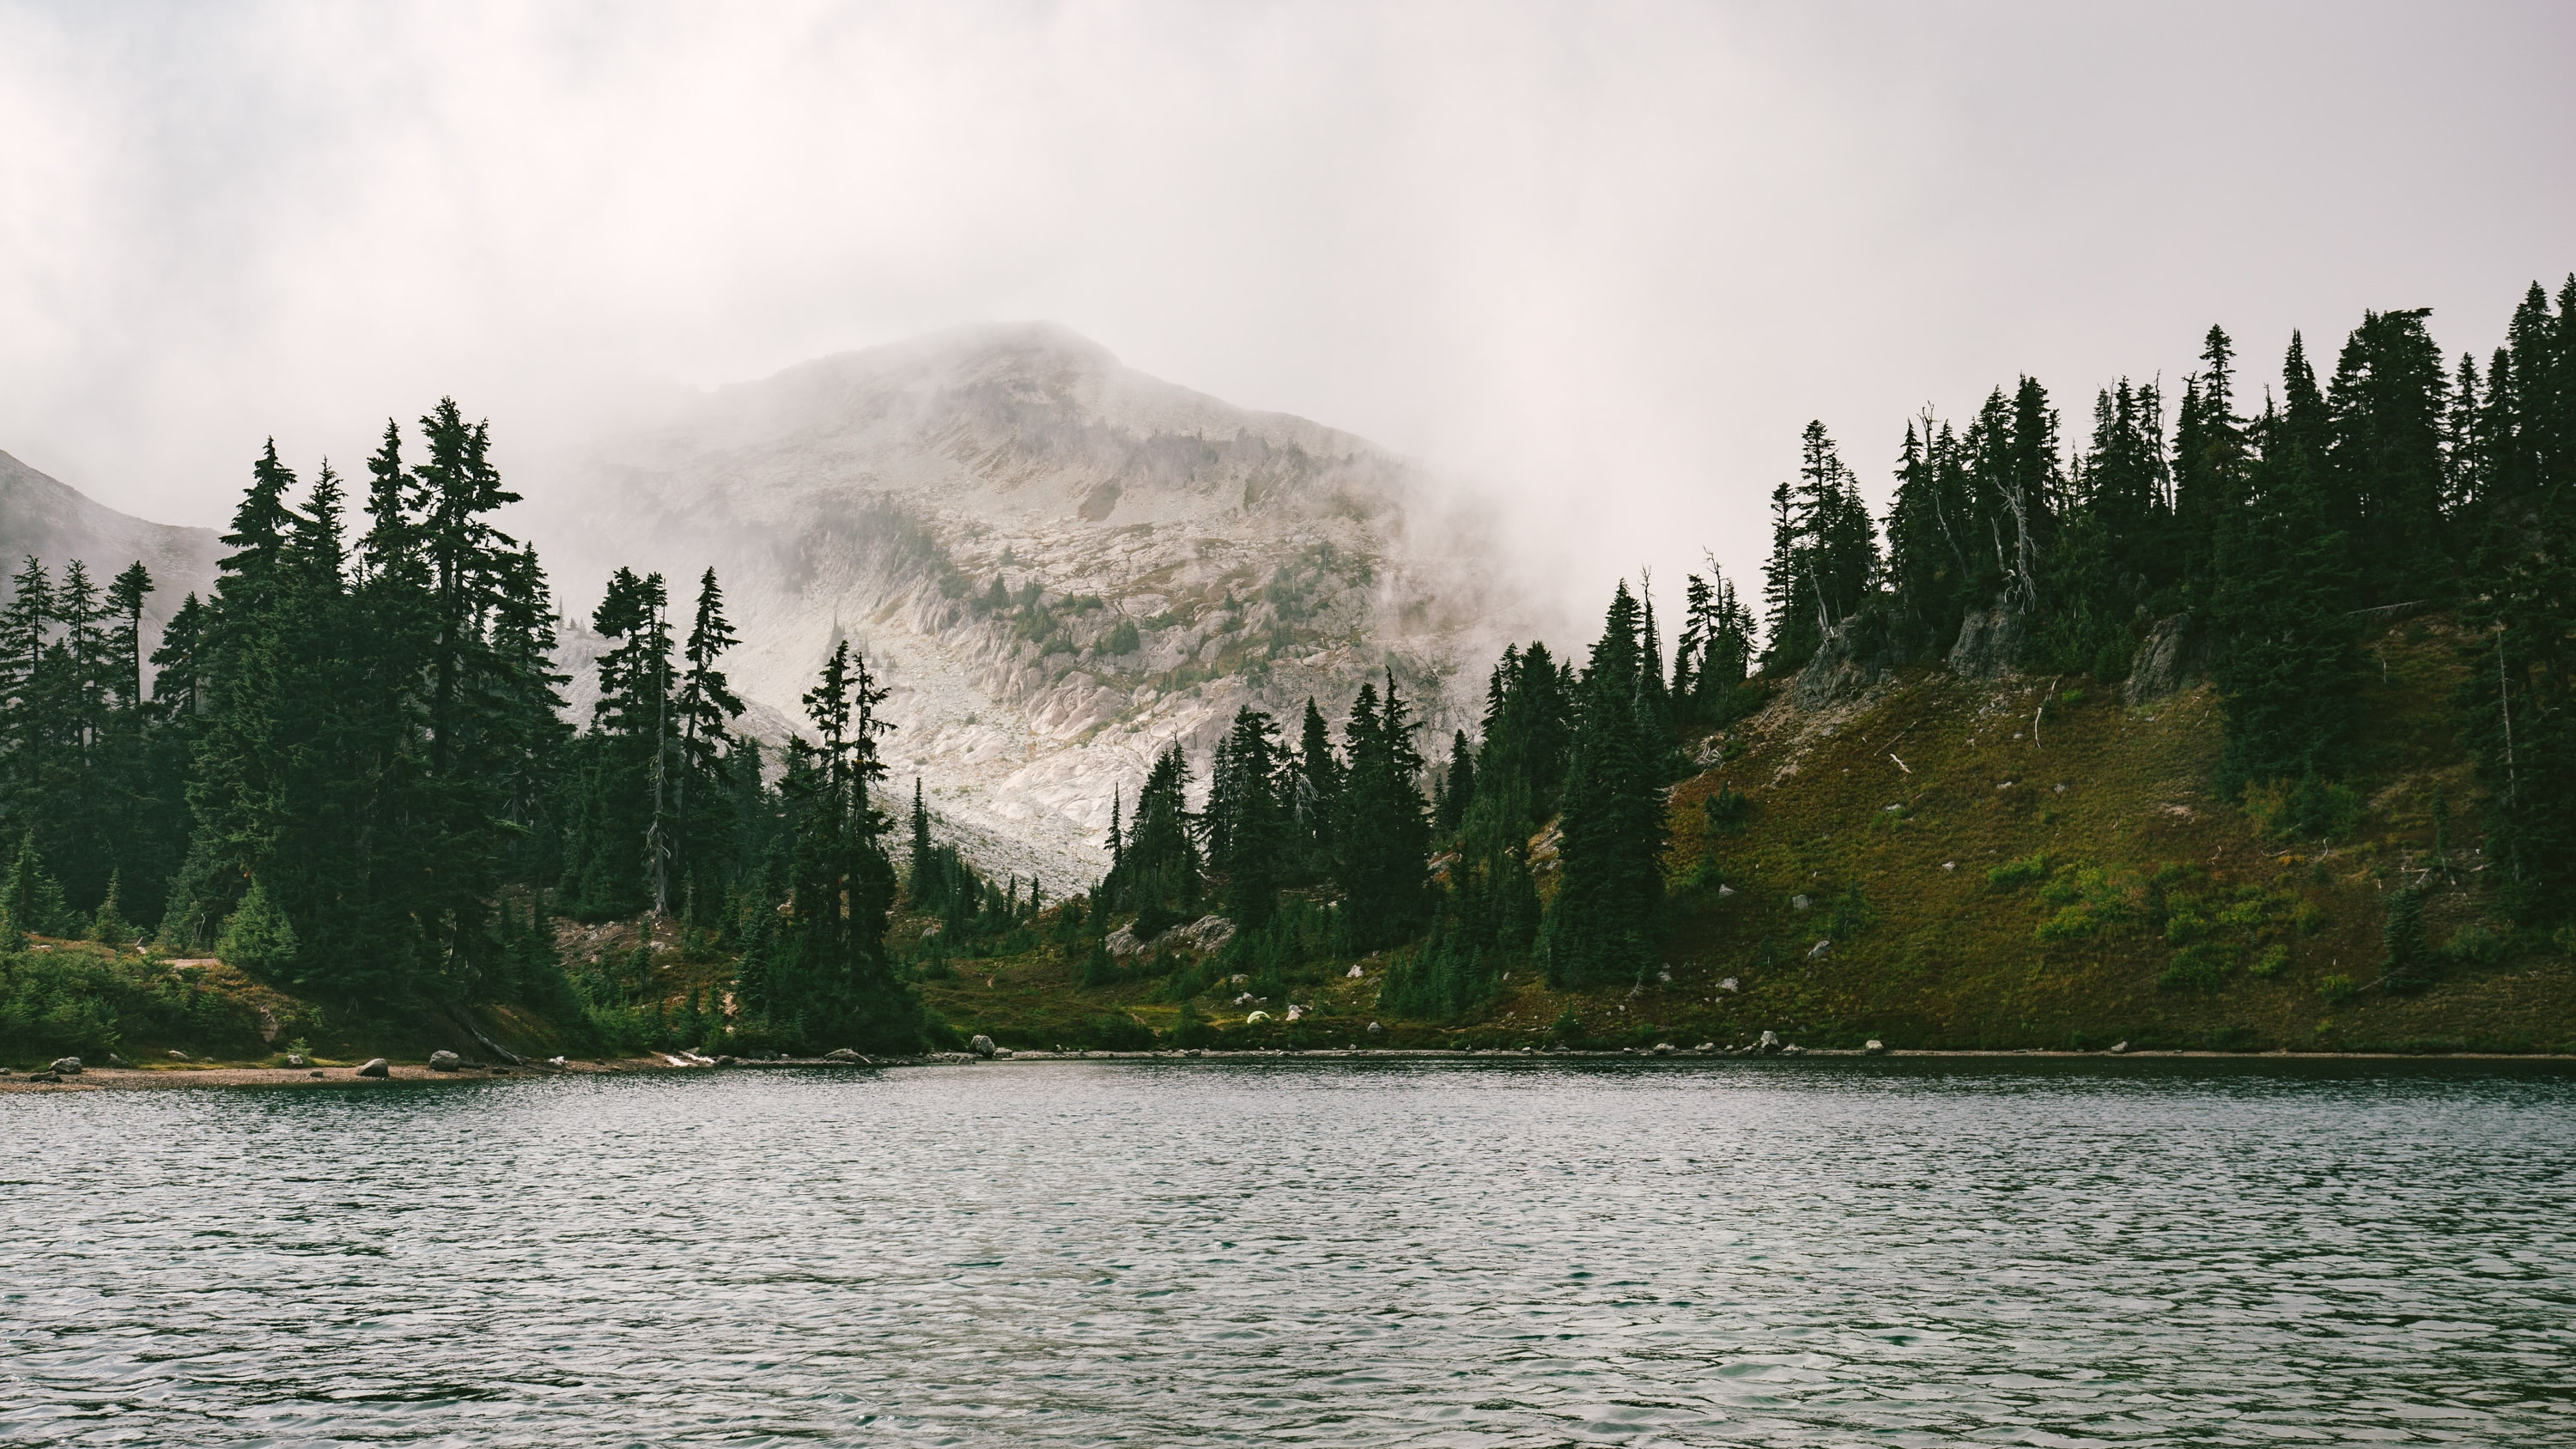 A foggy mountain near a lake in North Cascades National Park